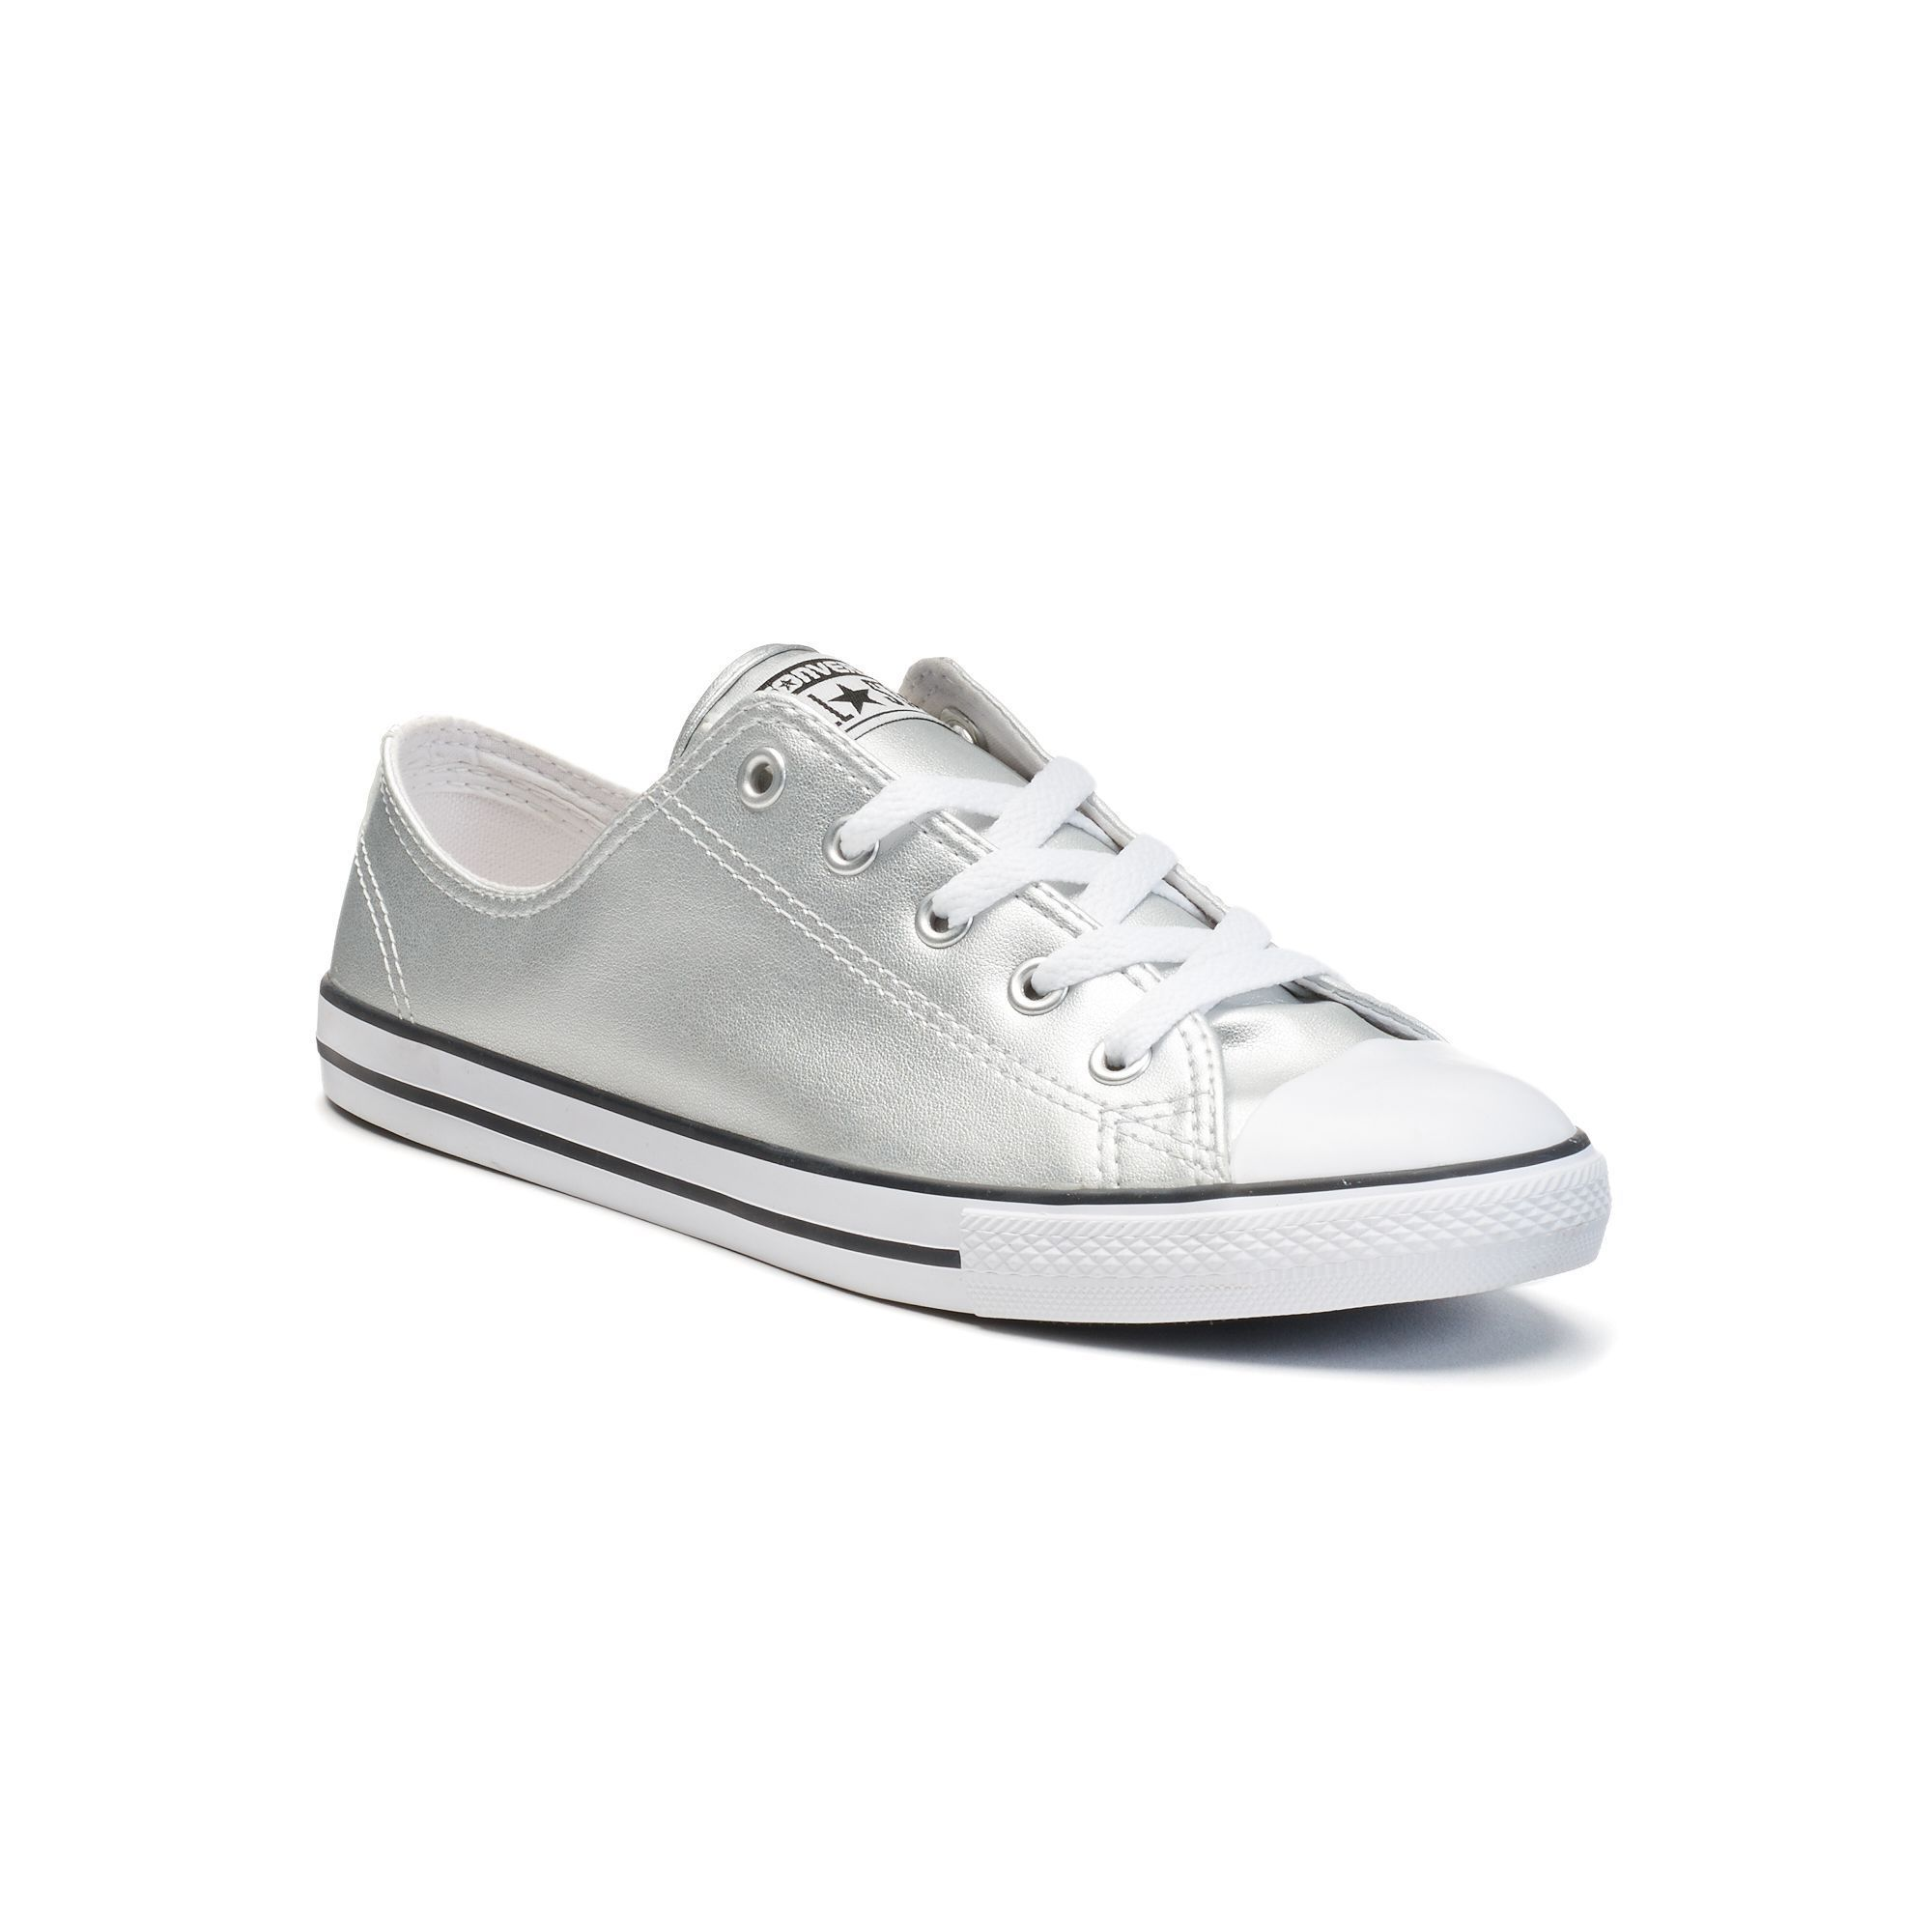 cf90f9832d77 Women s Converse Chuck Taylor All Star Dainty Metallic Leather Shoes ...